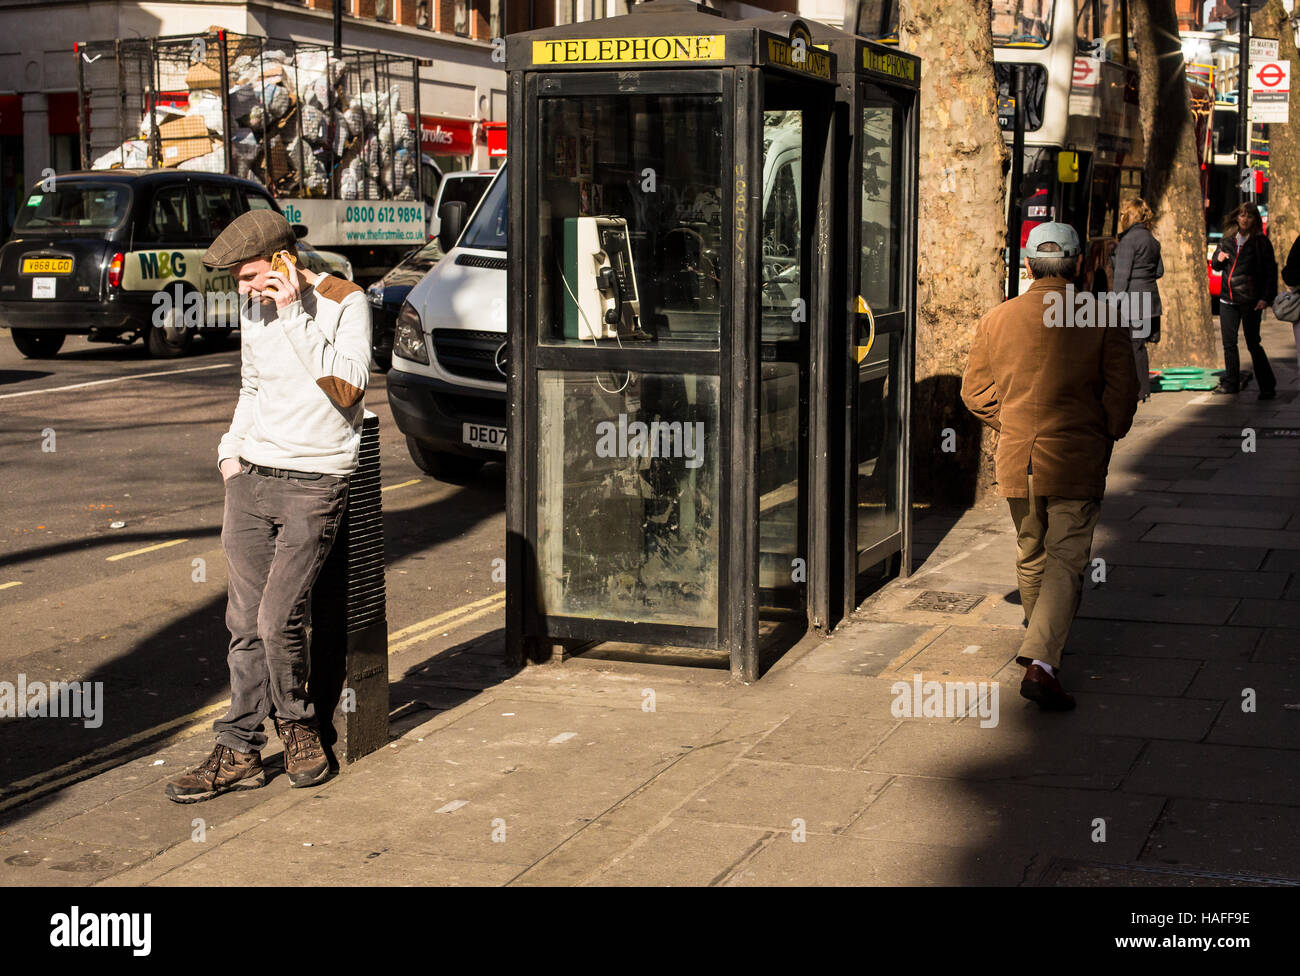 young man uses mobile phone near old style telephone box in London street - Stock Image